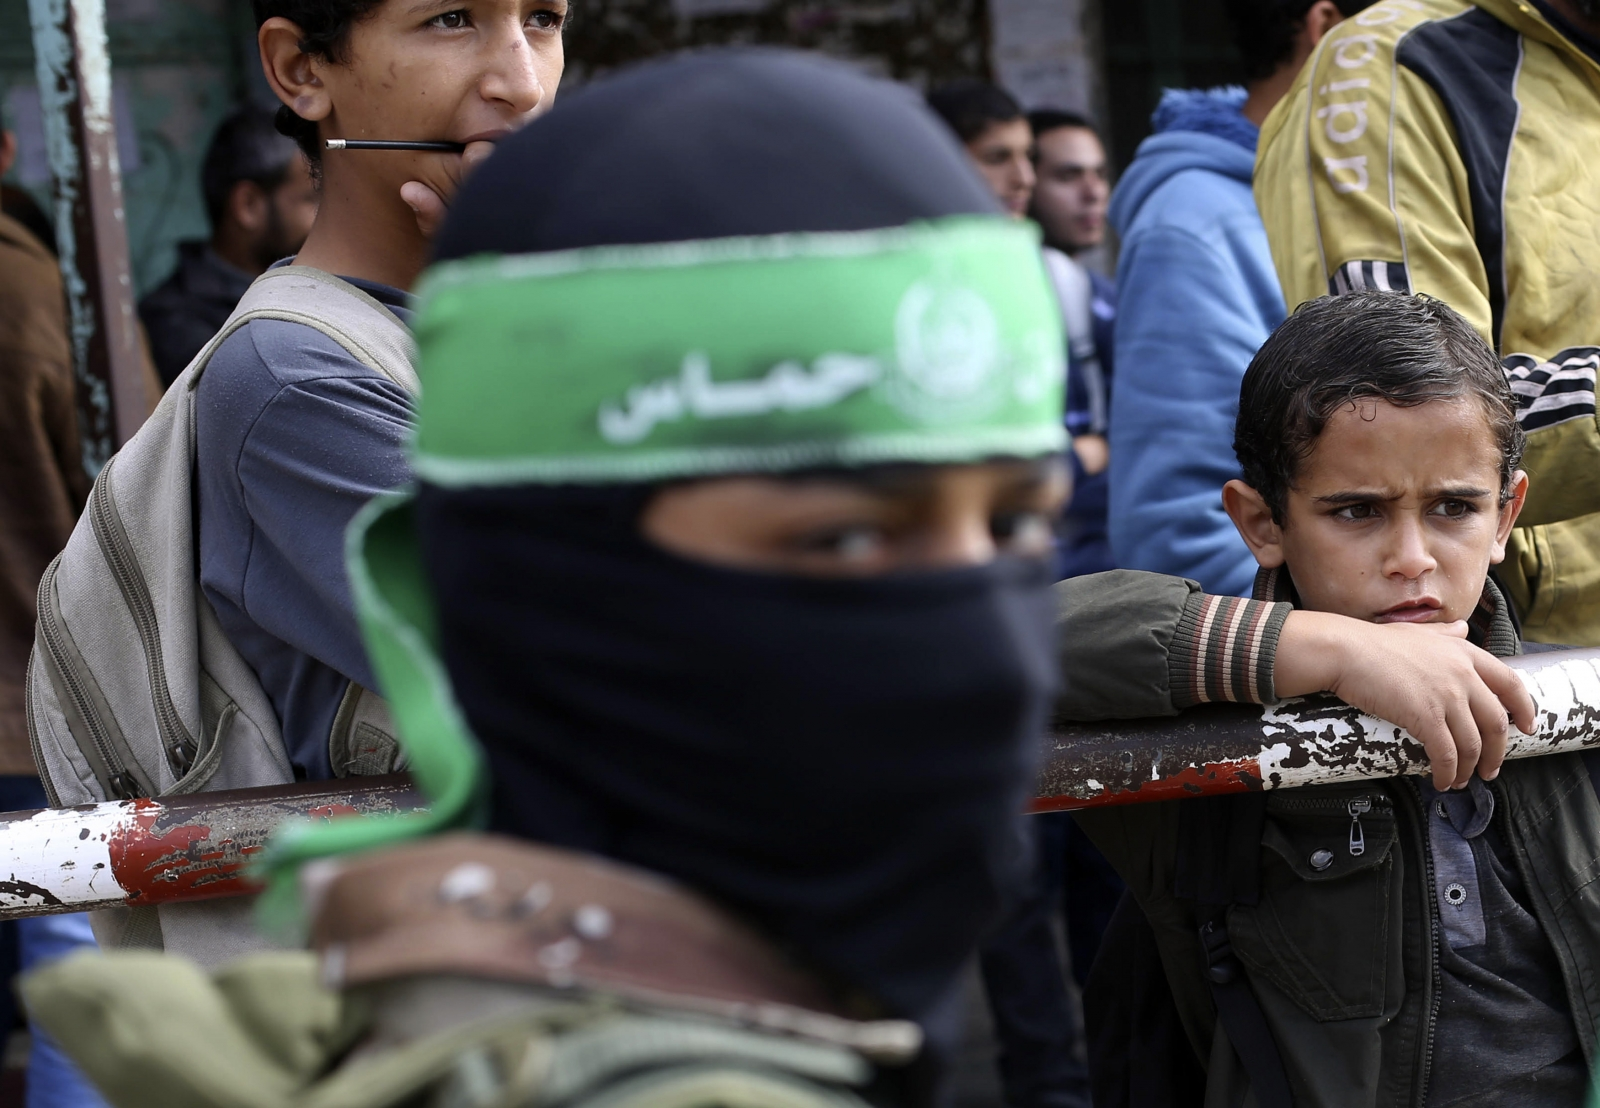 Palestinians take part in a protest against what they say are recent visits by Jewish activists to al-Aqsa mosque, in Rafah in the southern Gaza Strip November 3, 2014